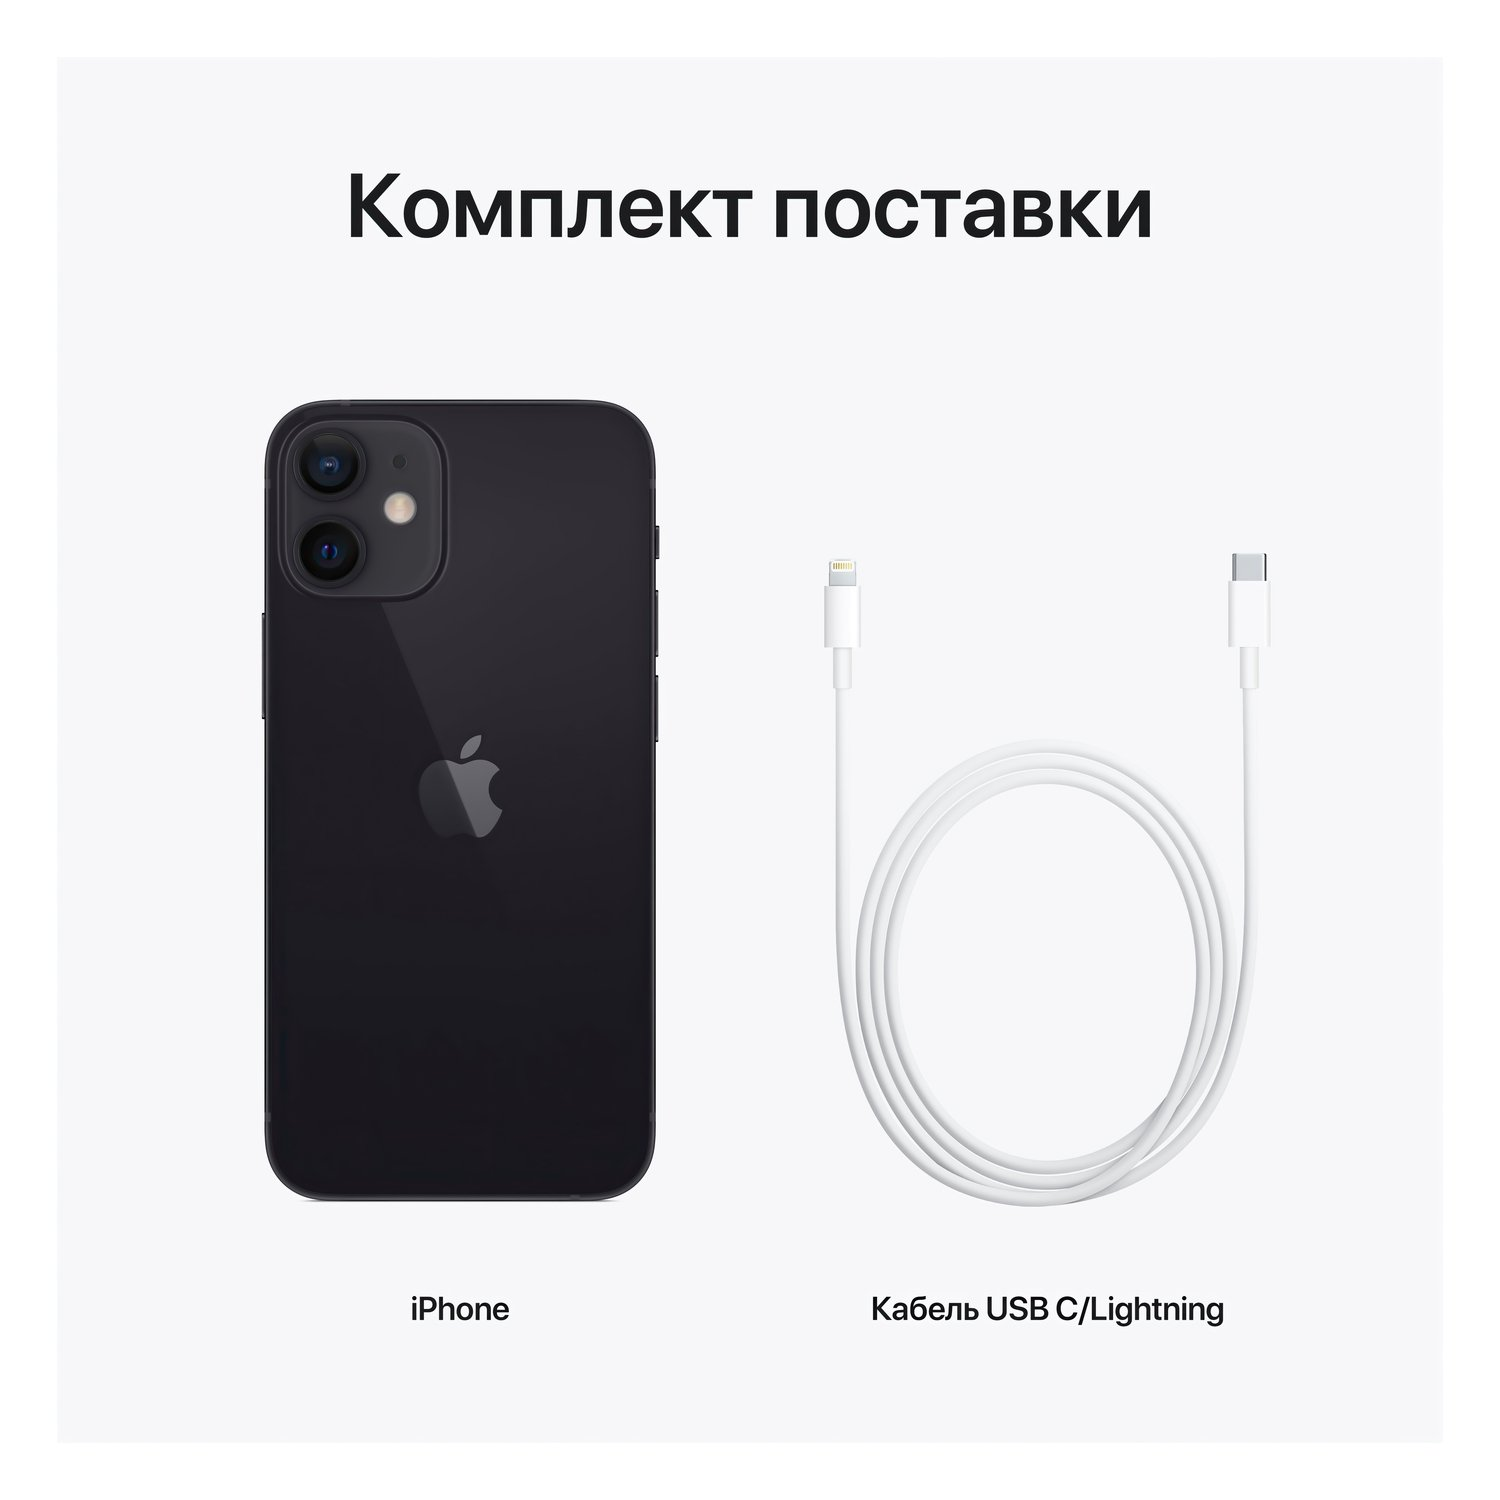 Смартфон Apple iPhone 12 64GB Black (MGJ53) фото 5